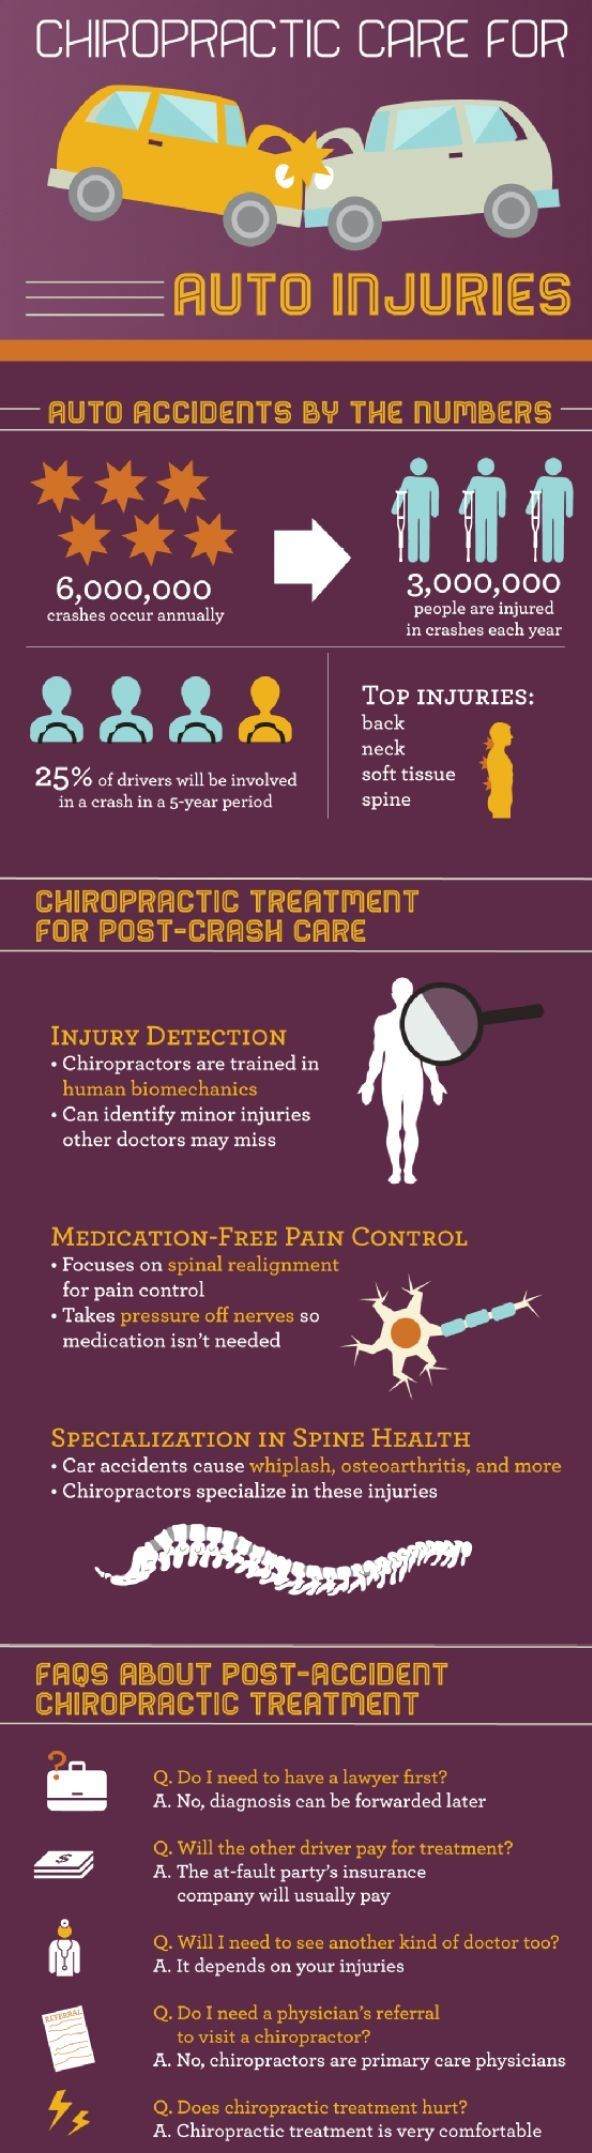 chiropractic treatment helps to cure auto accident injury fast